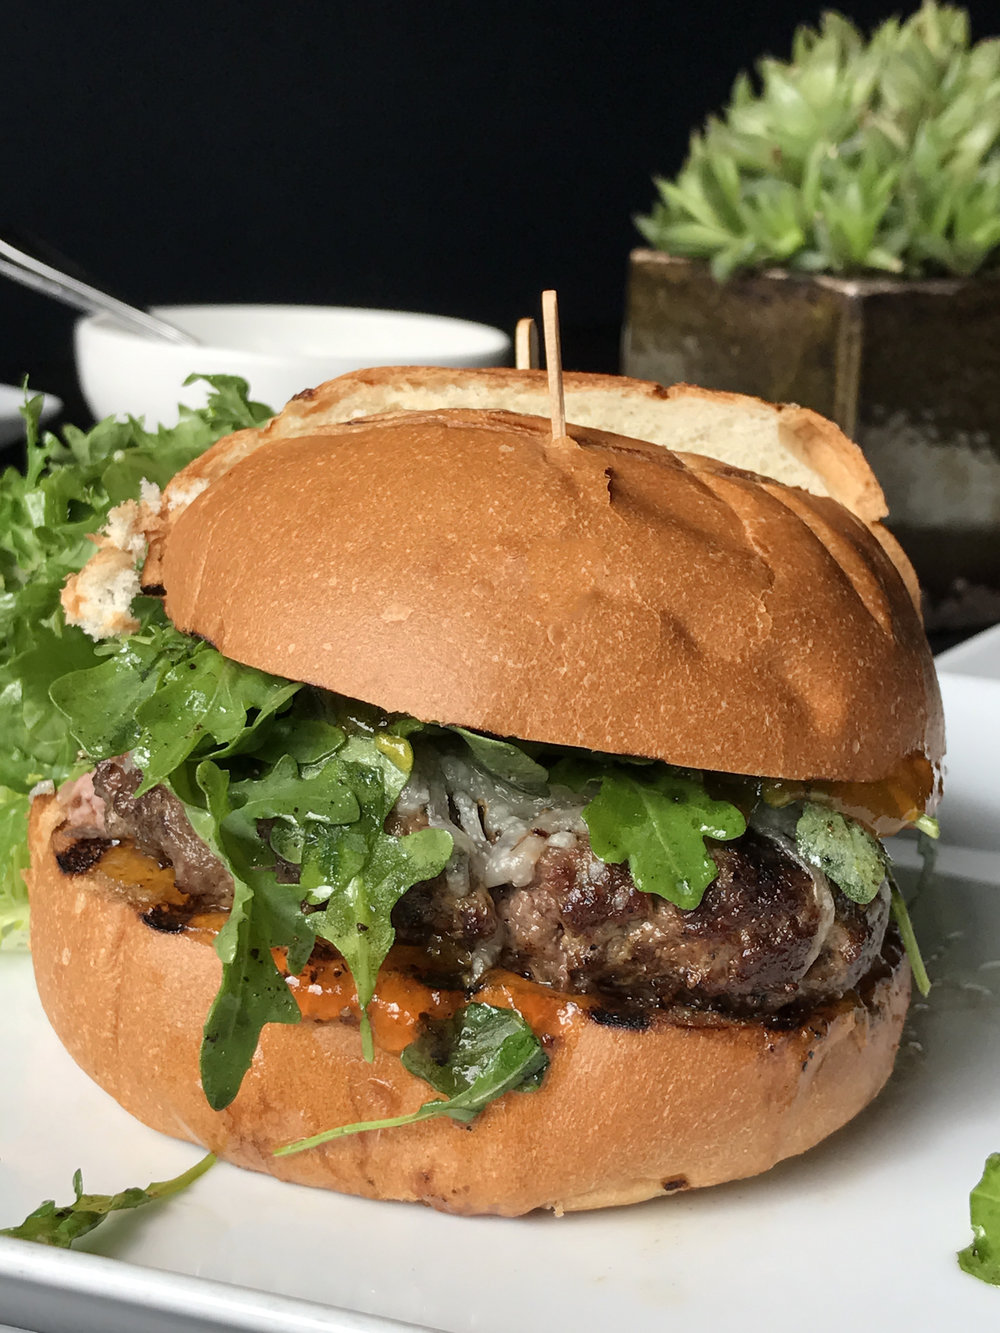 The Tripel Burger with duck confit, pork, and aged beef, arugula, truffle pecorino, house apricot jam, on an onion brioche